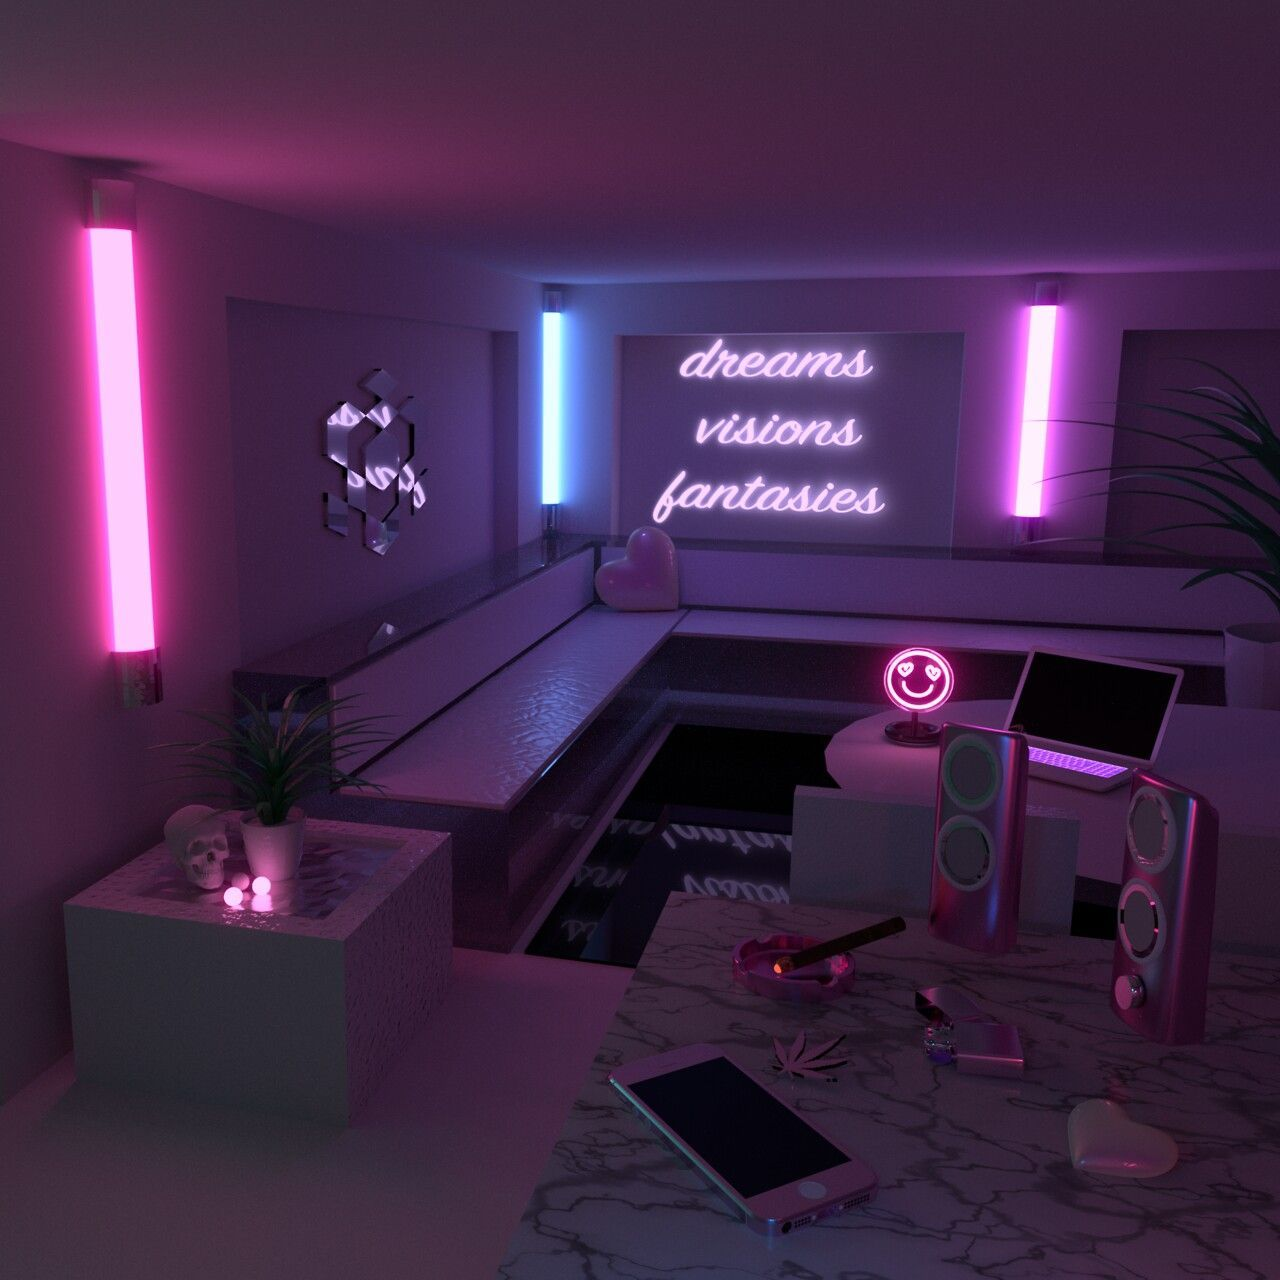 Aesthetic Room Neon Bedroom Aesthetic Rooms Aesthetic Room Decor #neon #lights #living #room